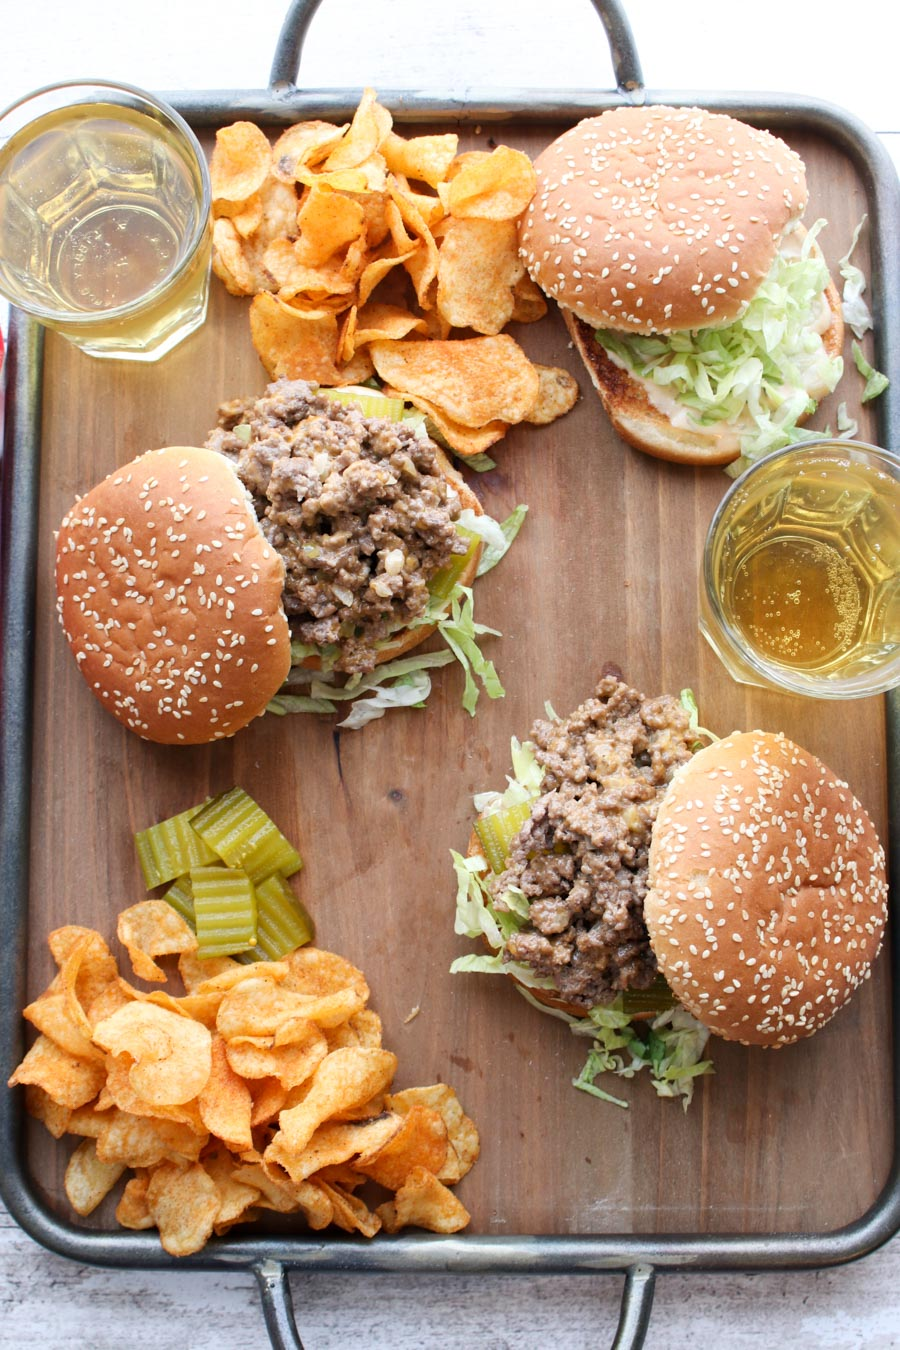 Overhead shot of sloppy joe sandwiches with chips and beer on a try